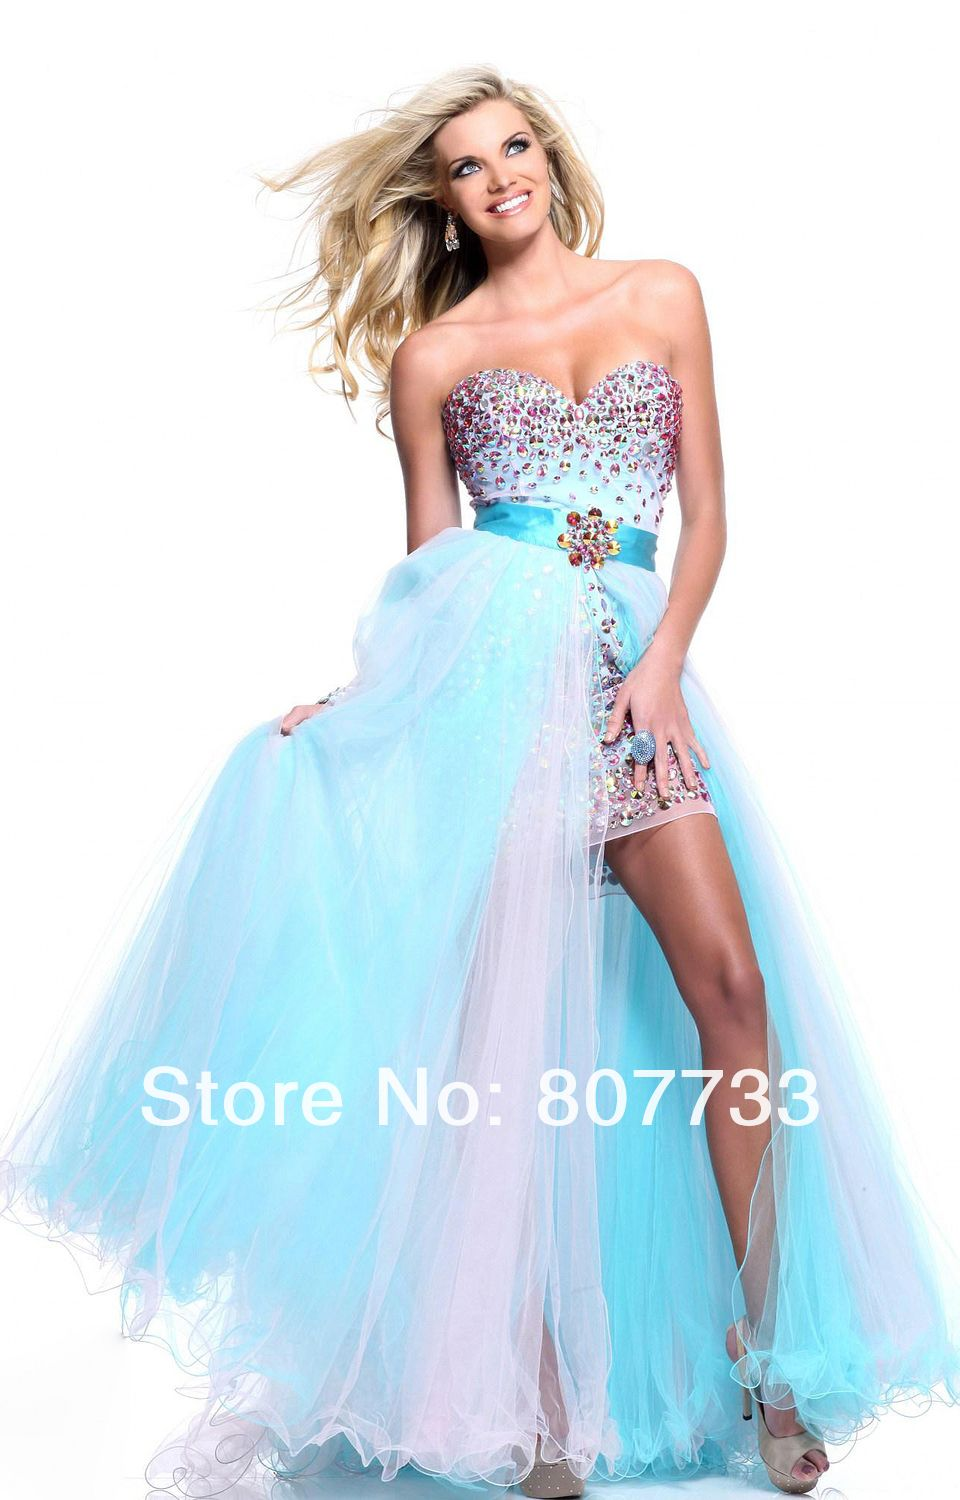 Two piece prom dress. Detachable Tulle Skirt | Prom Ideas ...